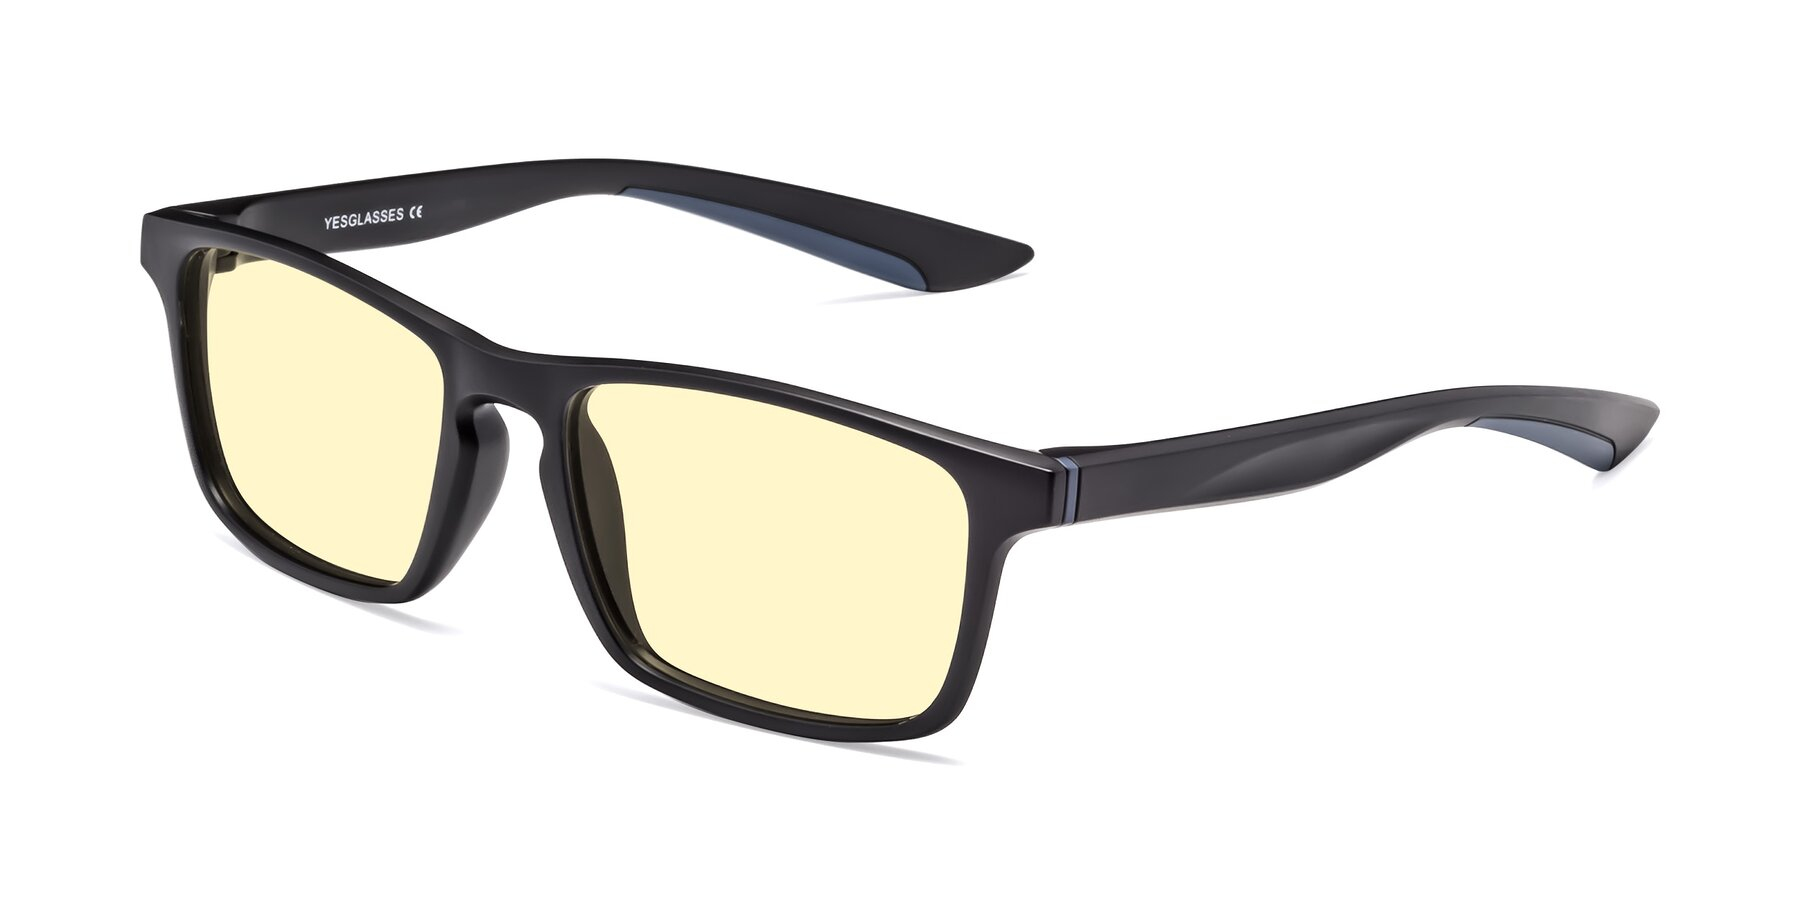 Angle of Passion in Matte Black-Blue with Light Yellow Tinted Lenses